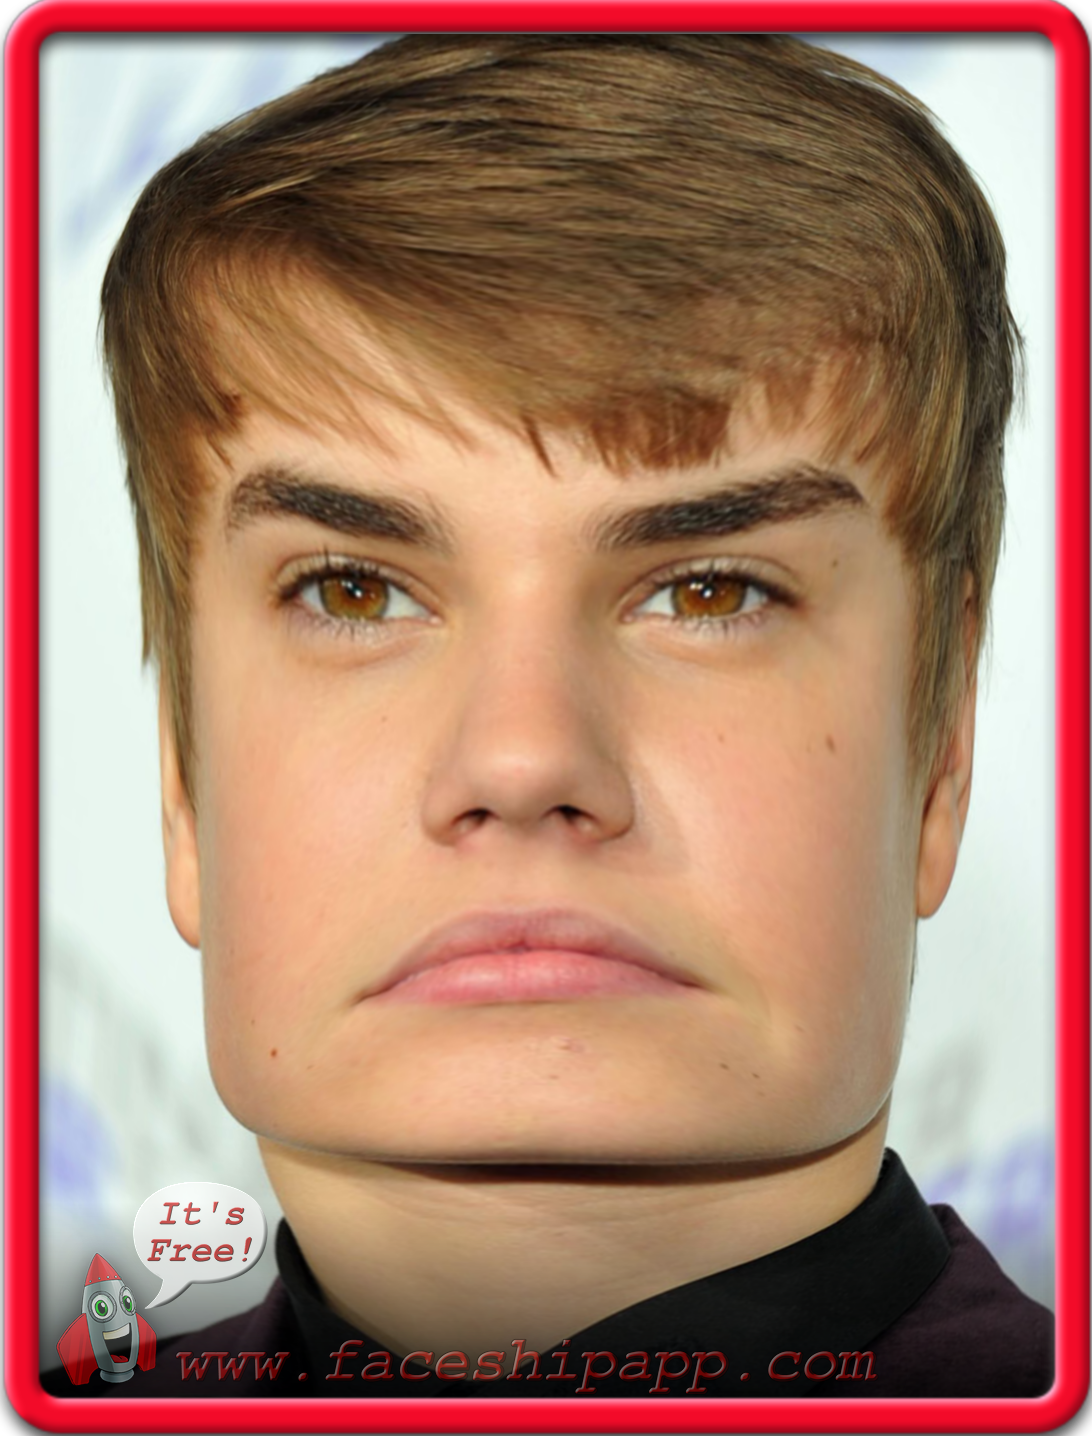 A Bieber Variation, created with the new Face-changing app